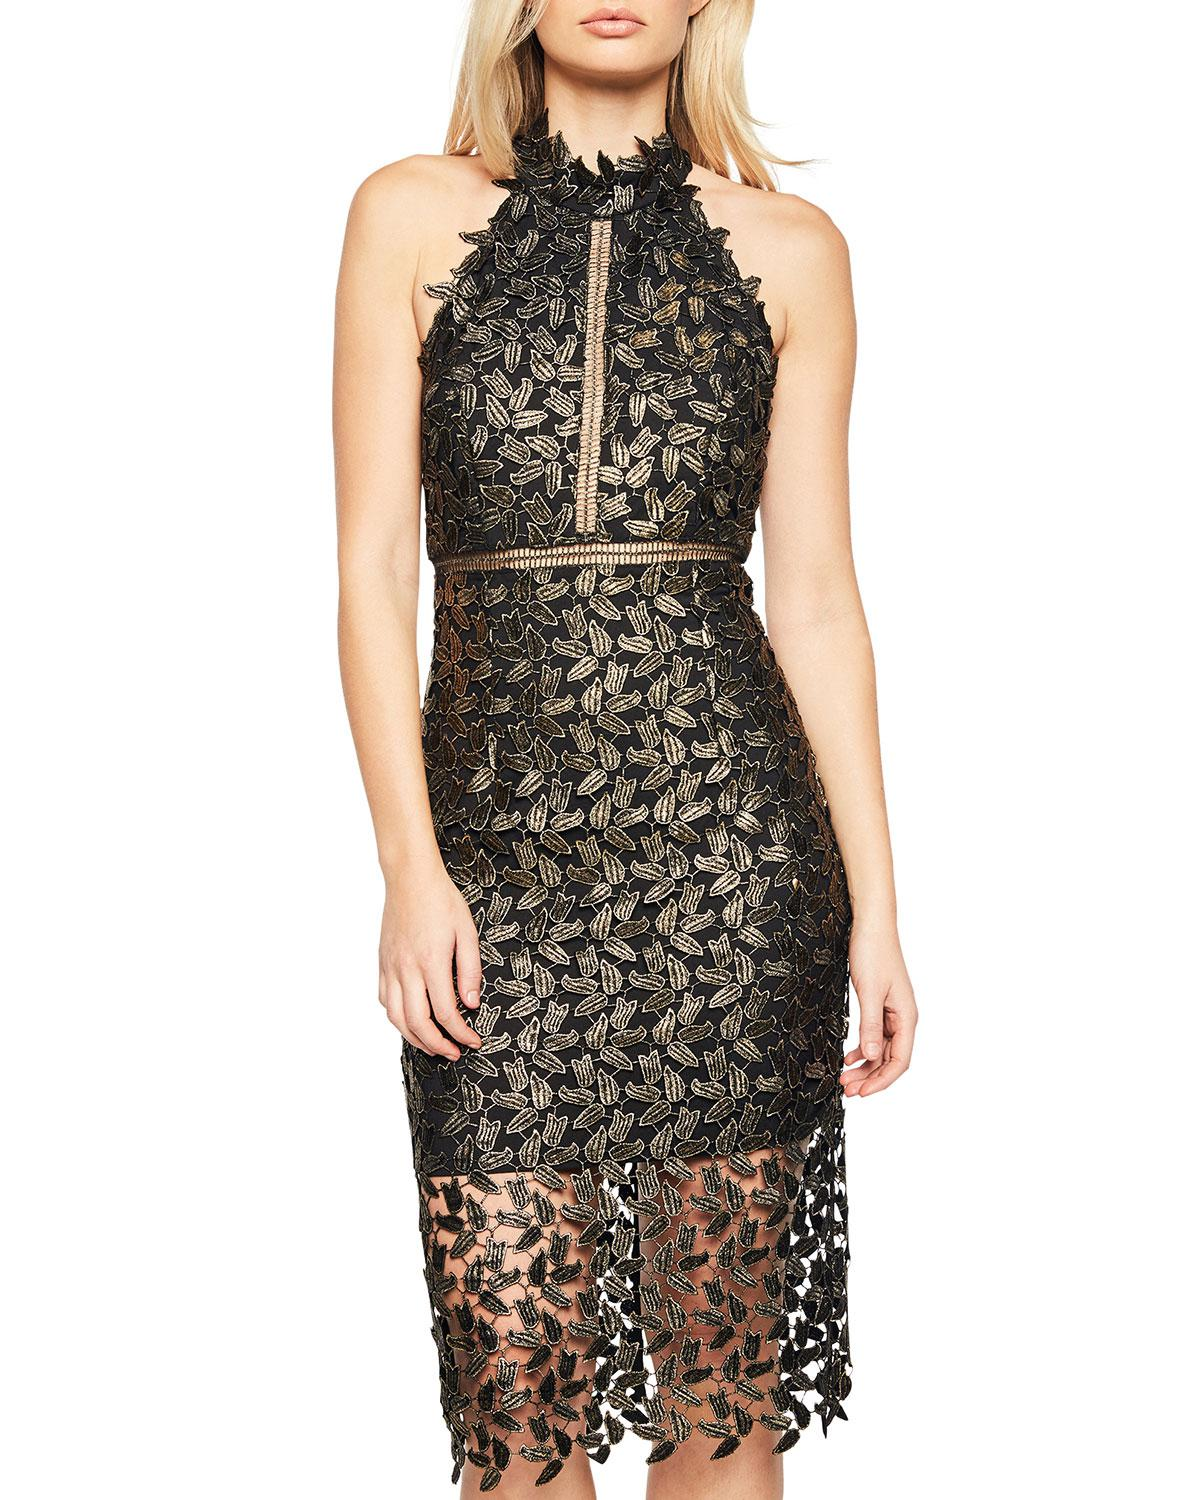 97902e6b Gallery. Previously sold at: Last Call · Women's Black Cocktail Dresses  Women's Black Lace Cocktail Dresses